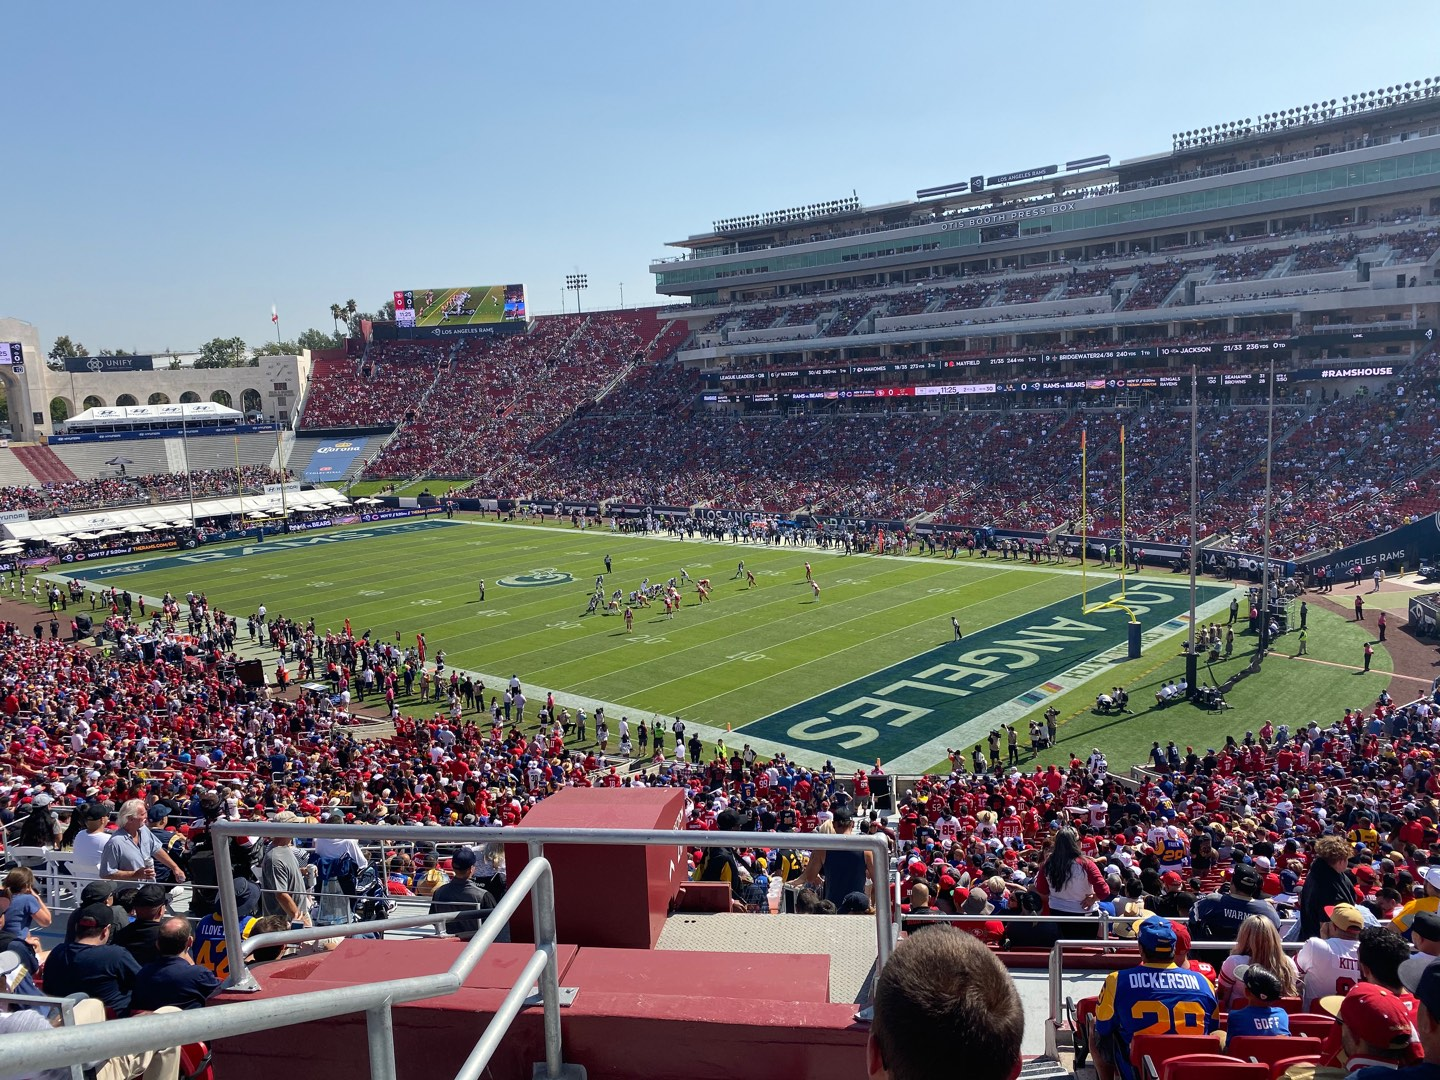 Los Angeles Memorial Coliseum Section 217 Row 12 Seat 40